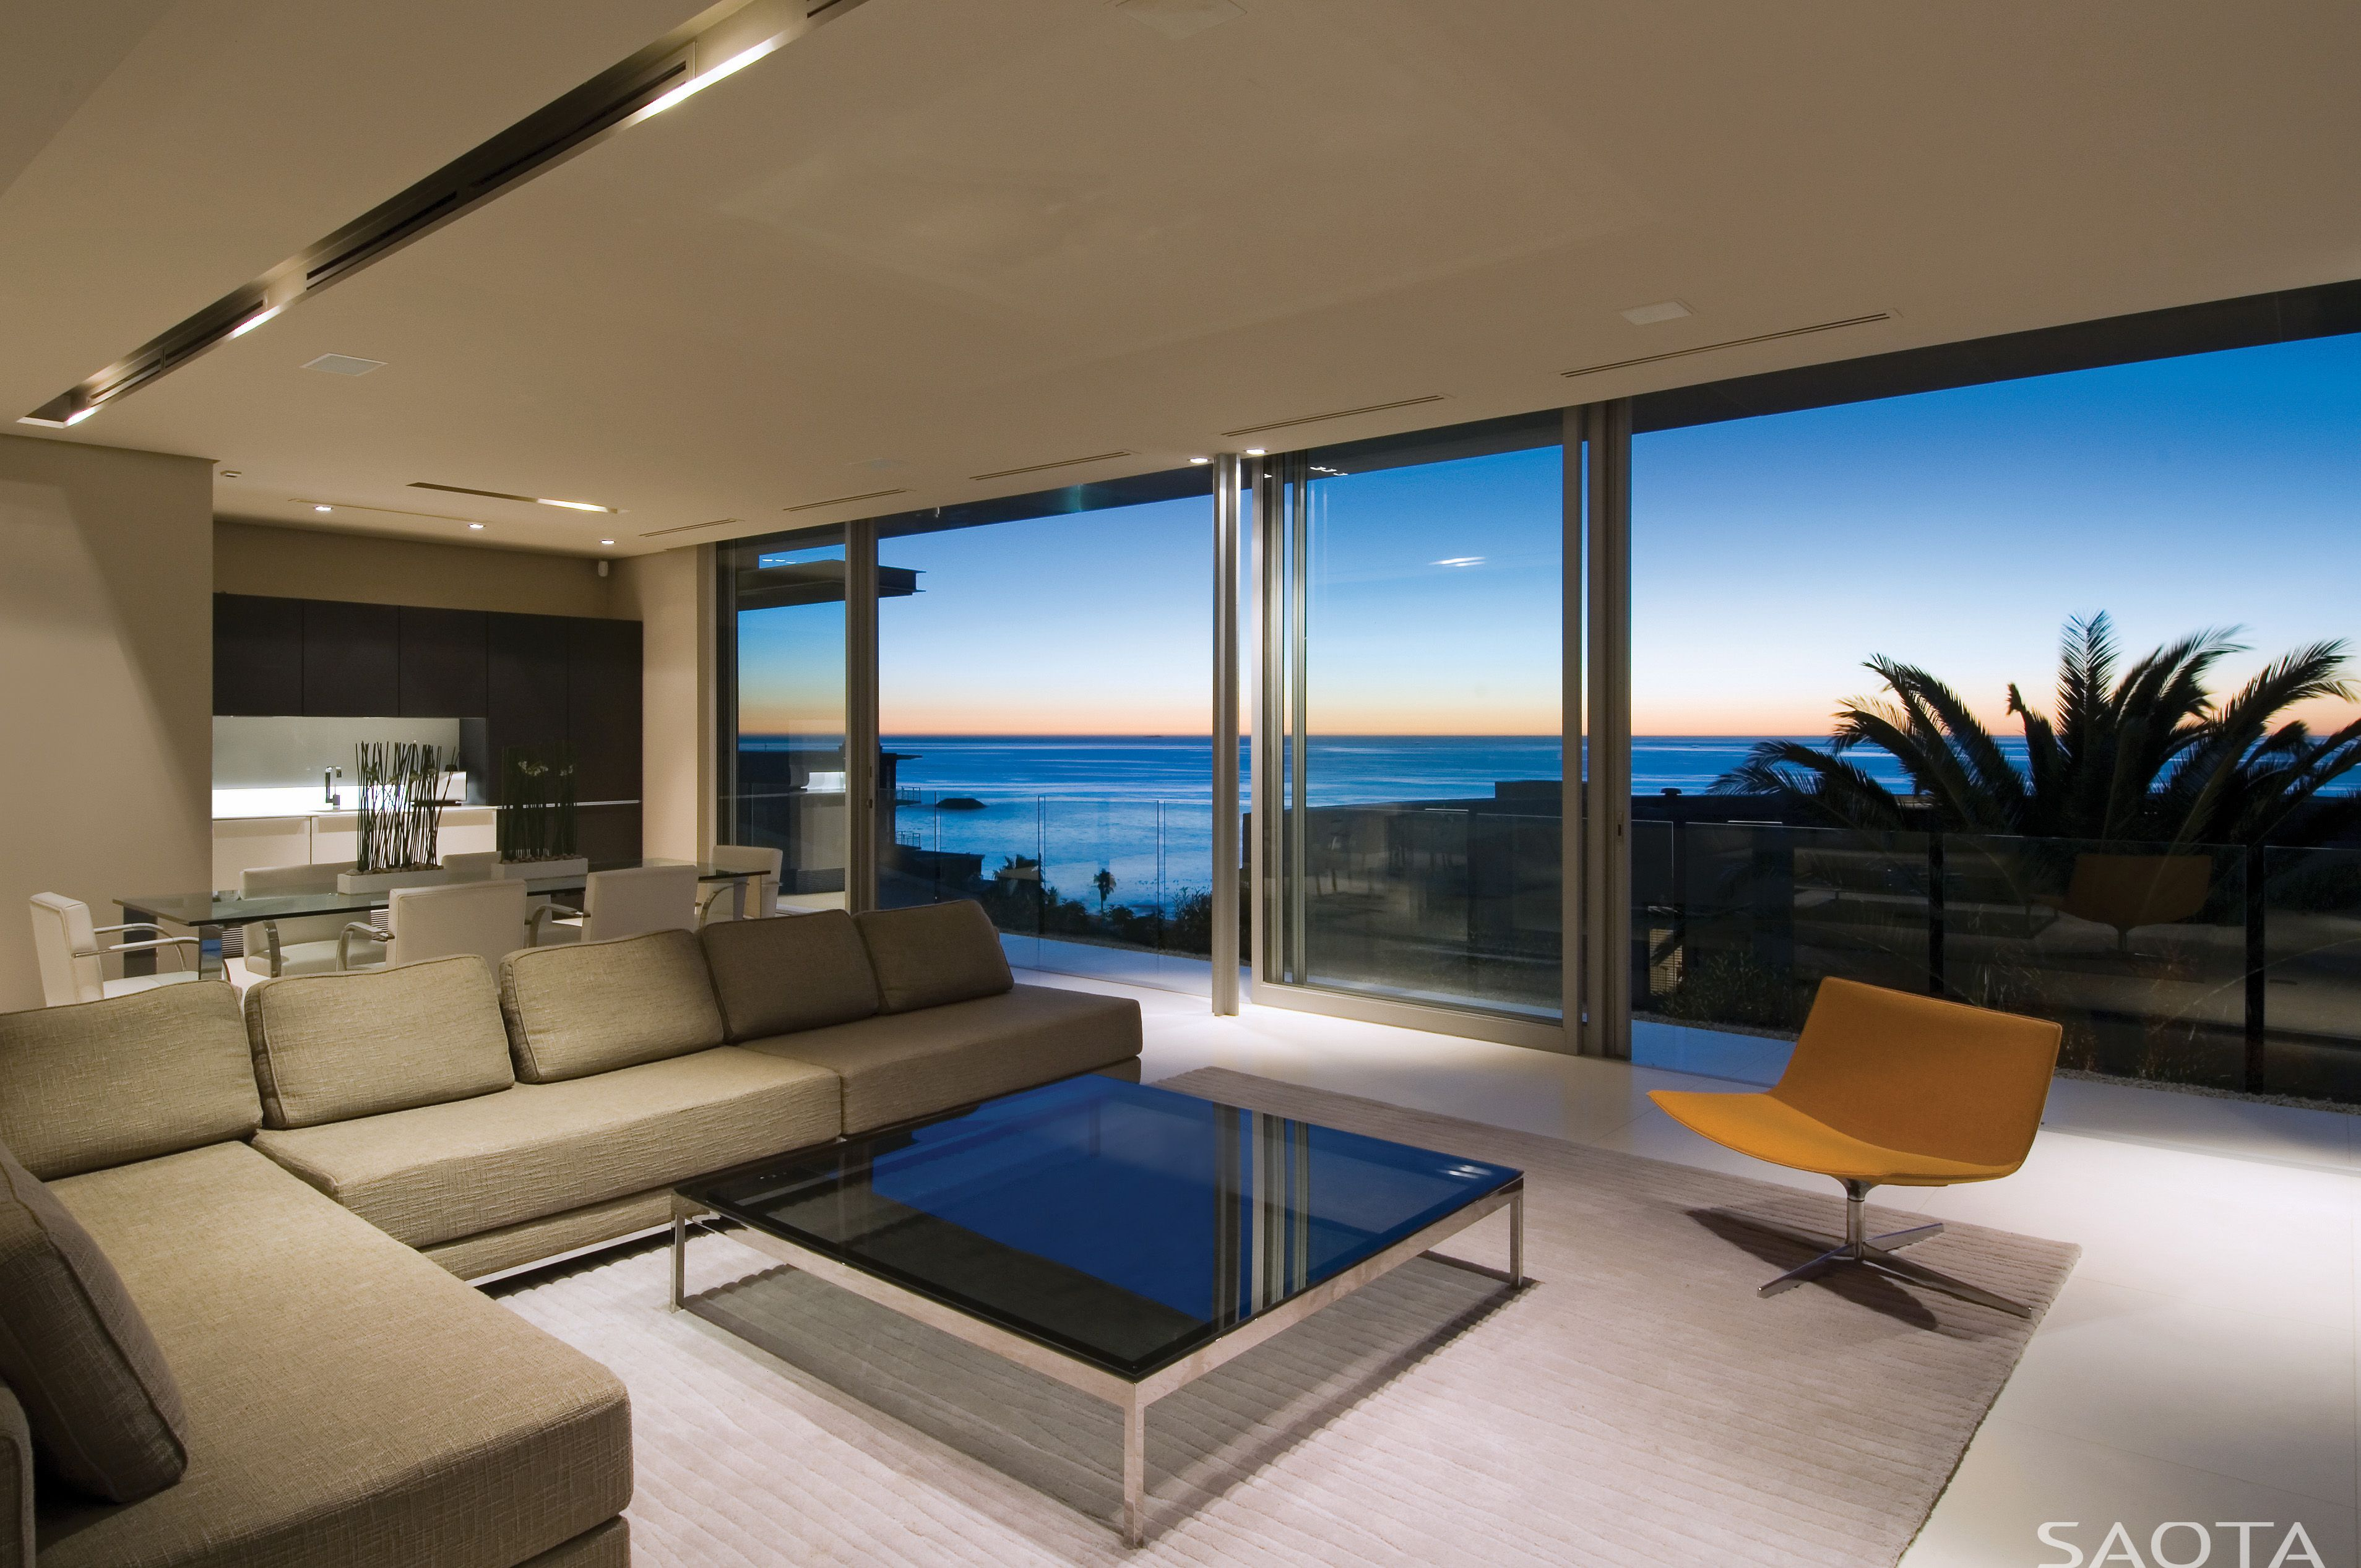 Modern Sofa Designs South Africa Statistics Software Saota Living Rooms First Crescent Cape Town